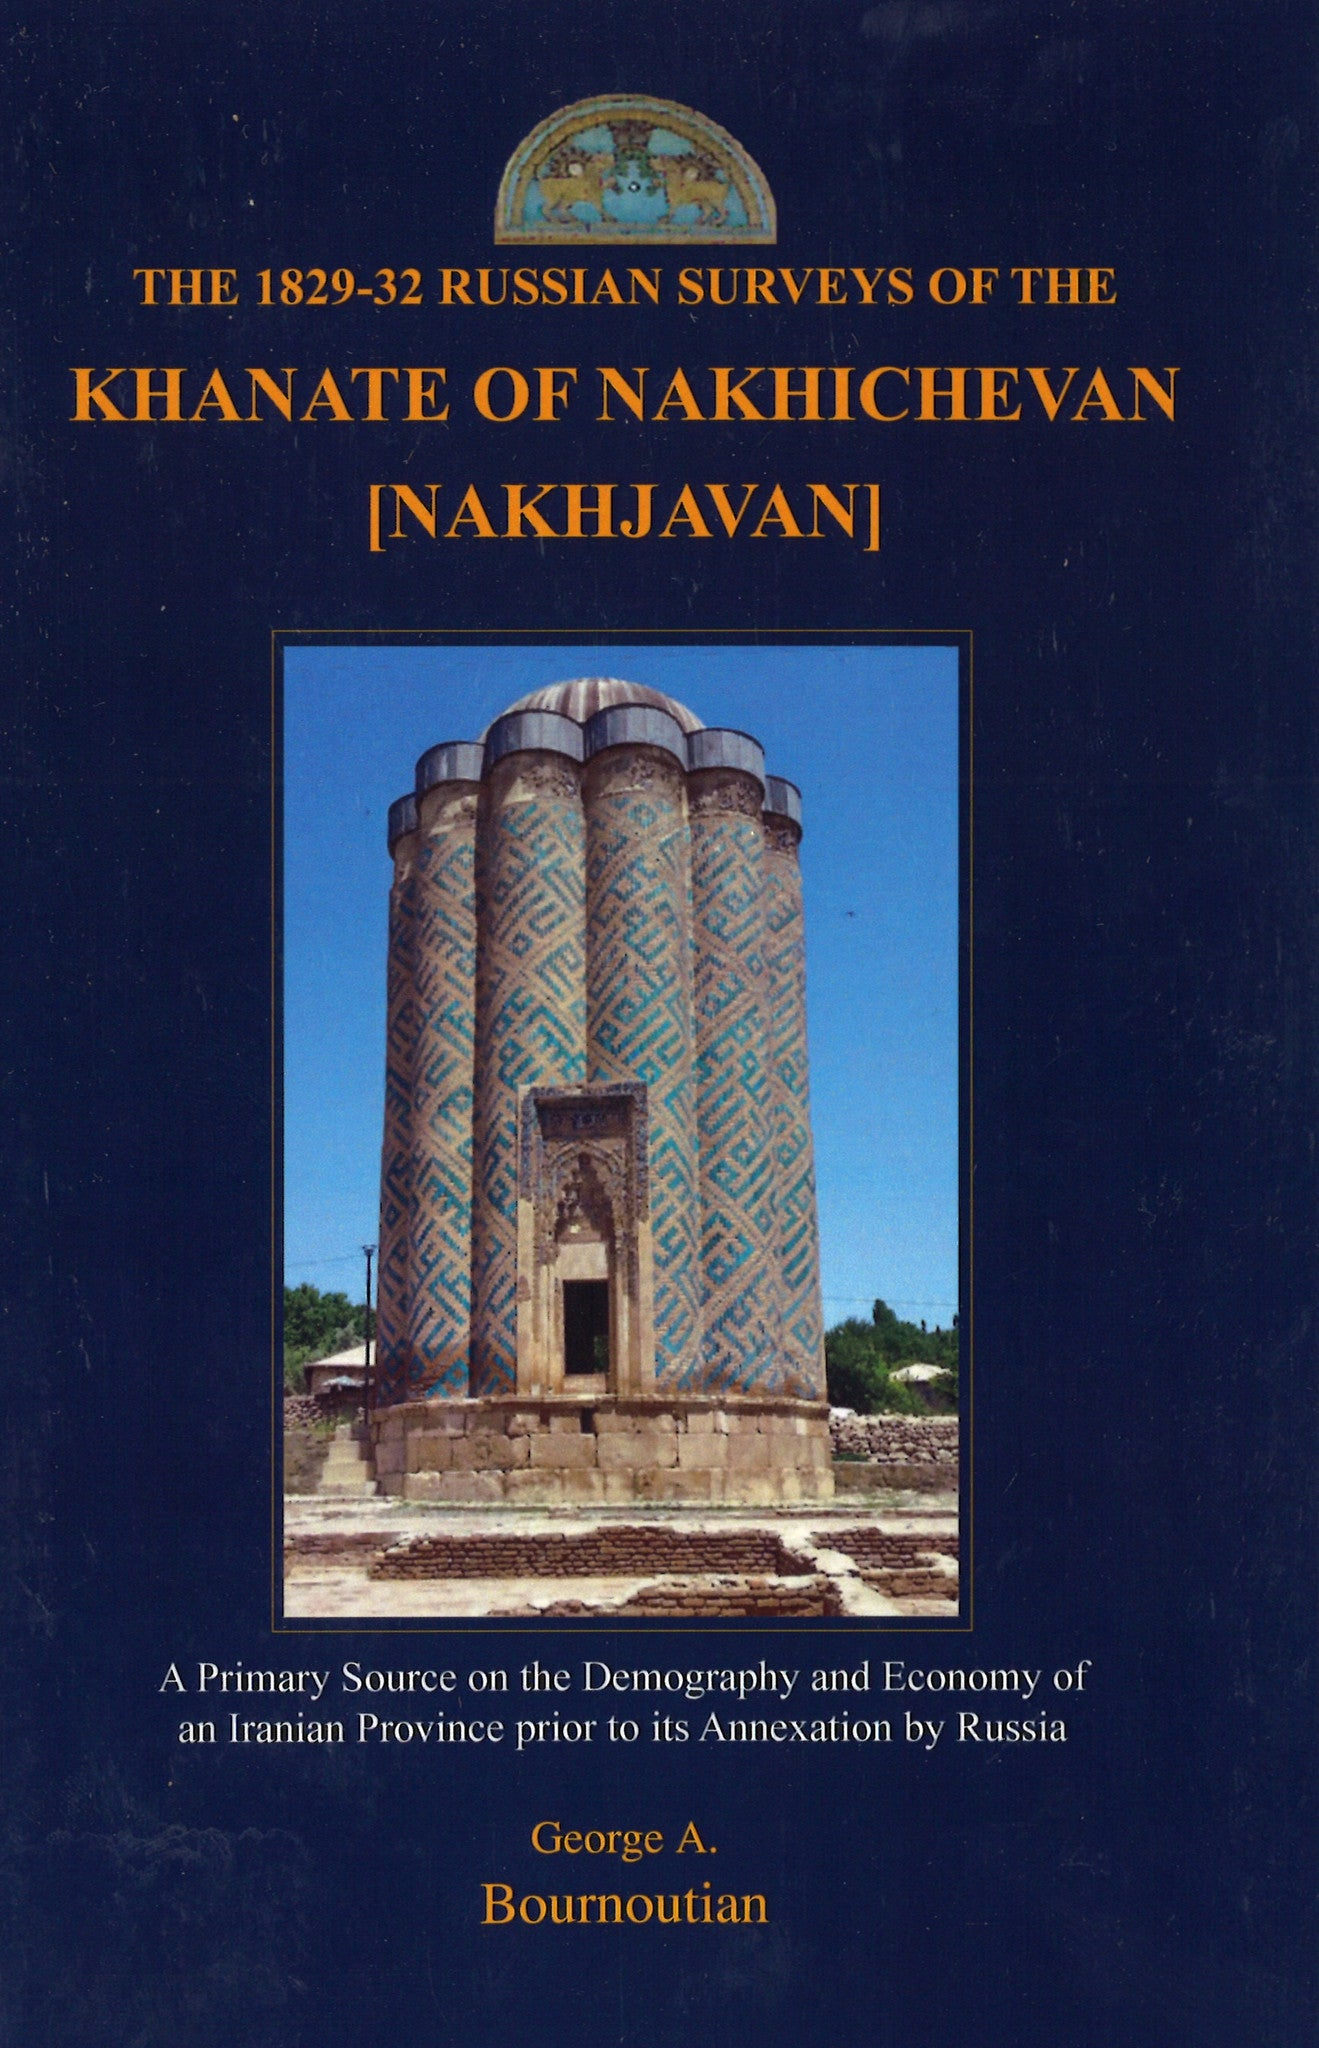 1829-32 RUSSIAN SURVEY OF THE KHANATE OF NAKHICHEVAN [NAKHJAVAN]